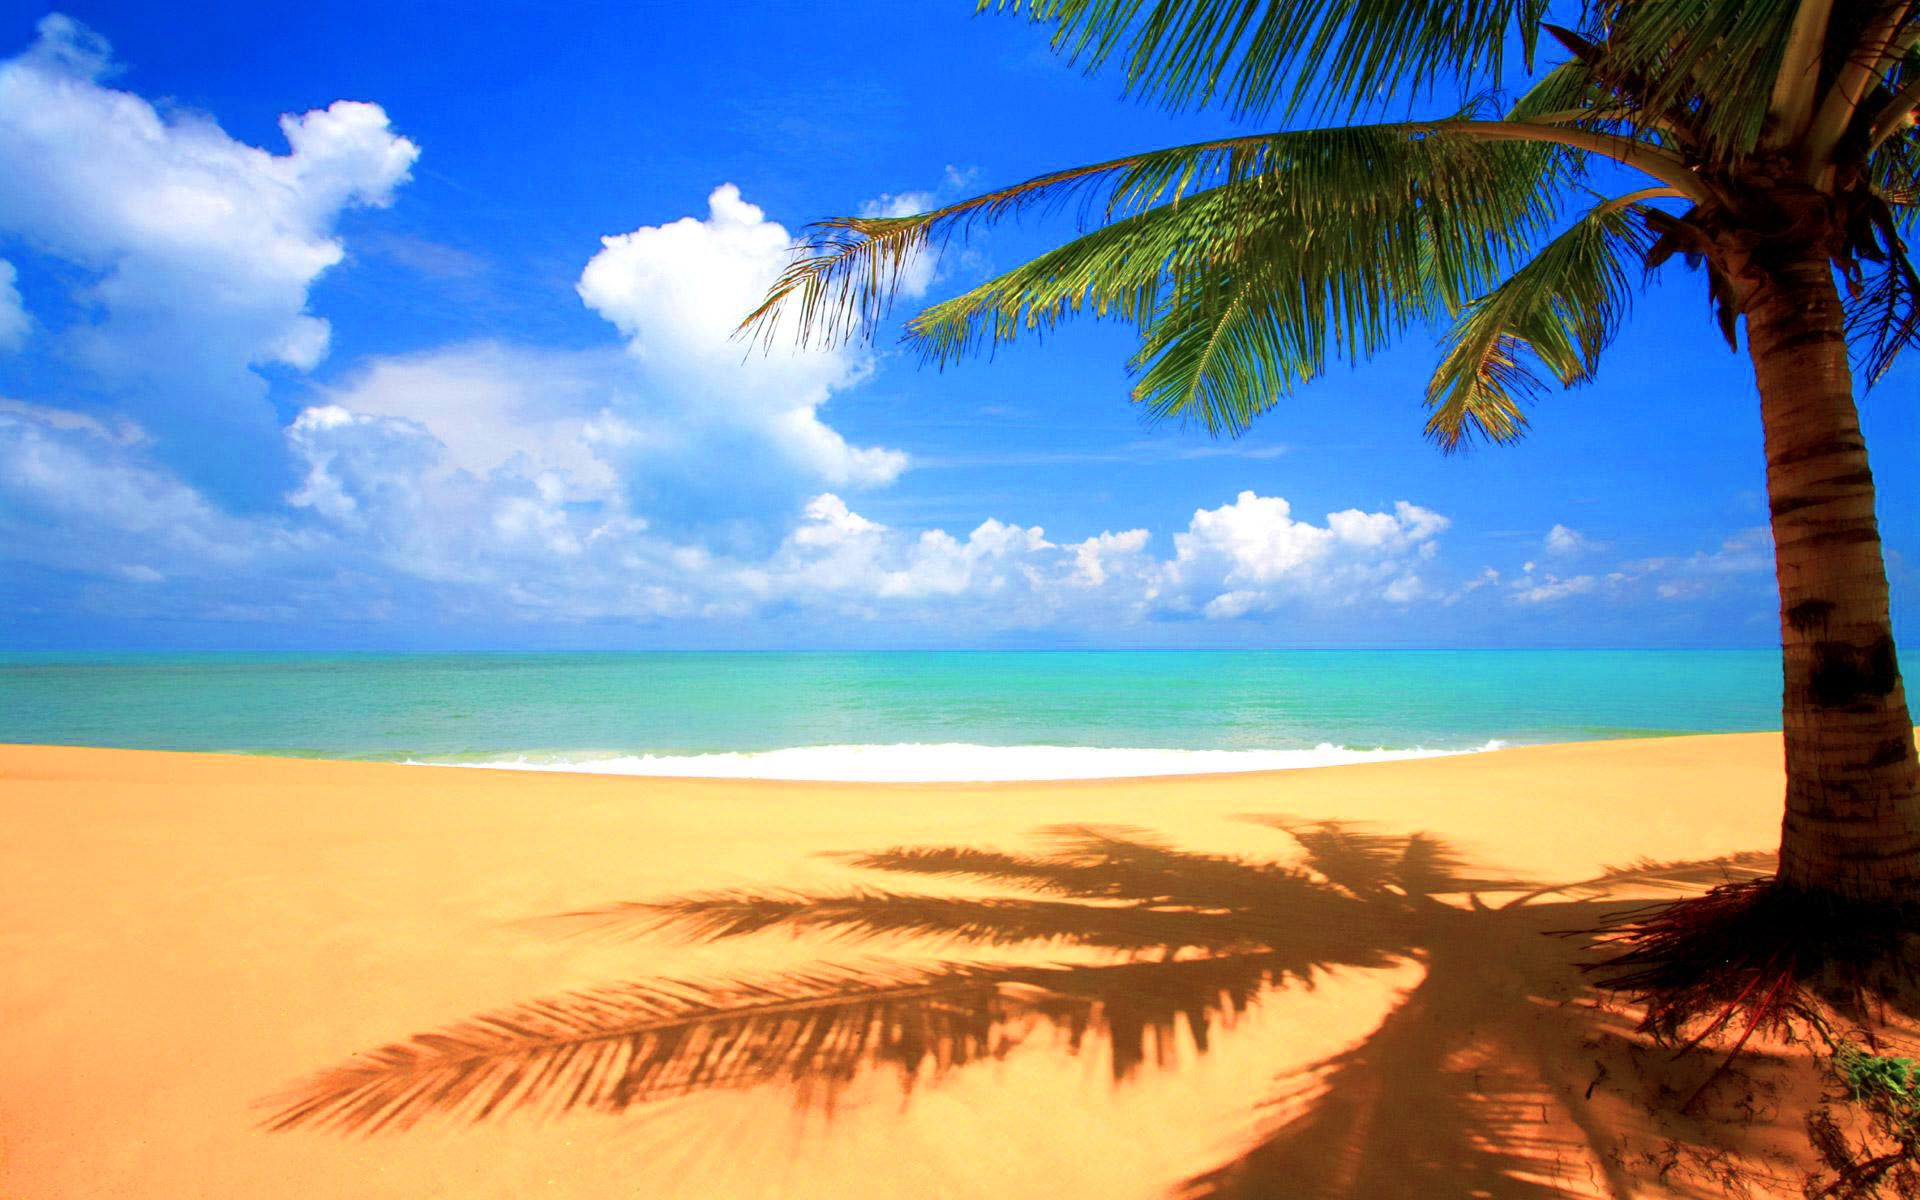 Image For BEAUTIFUL BEACH BACKGROUNDS HIGH DEFINITION